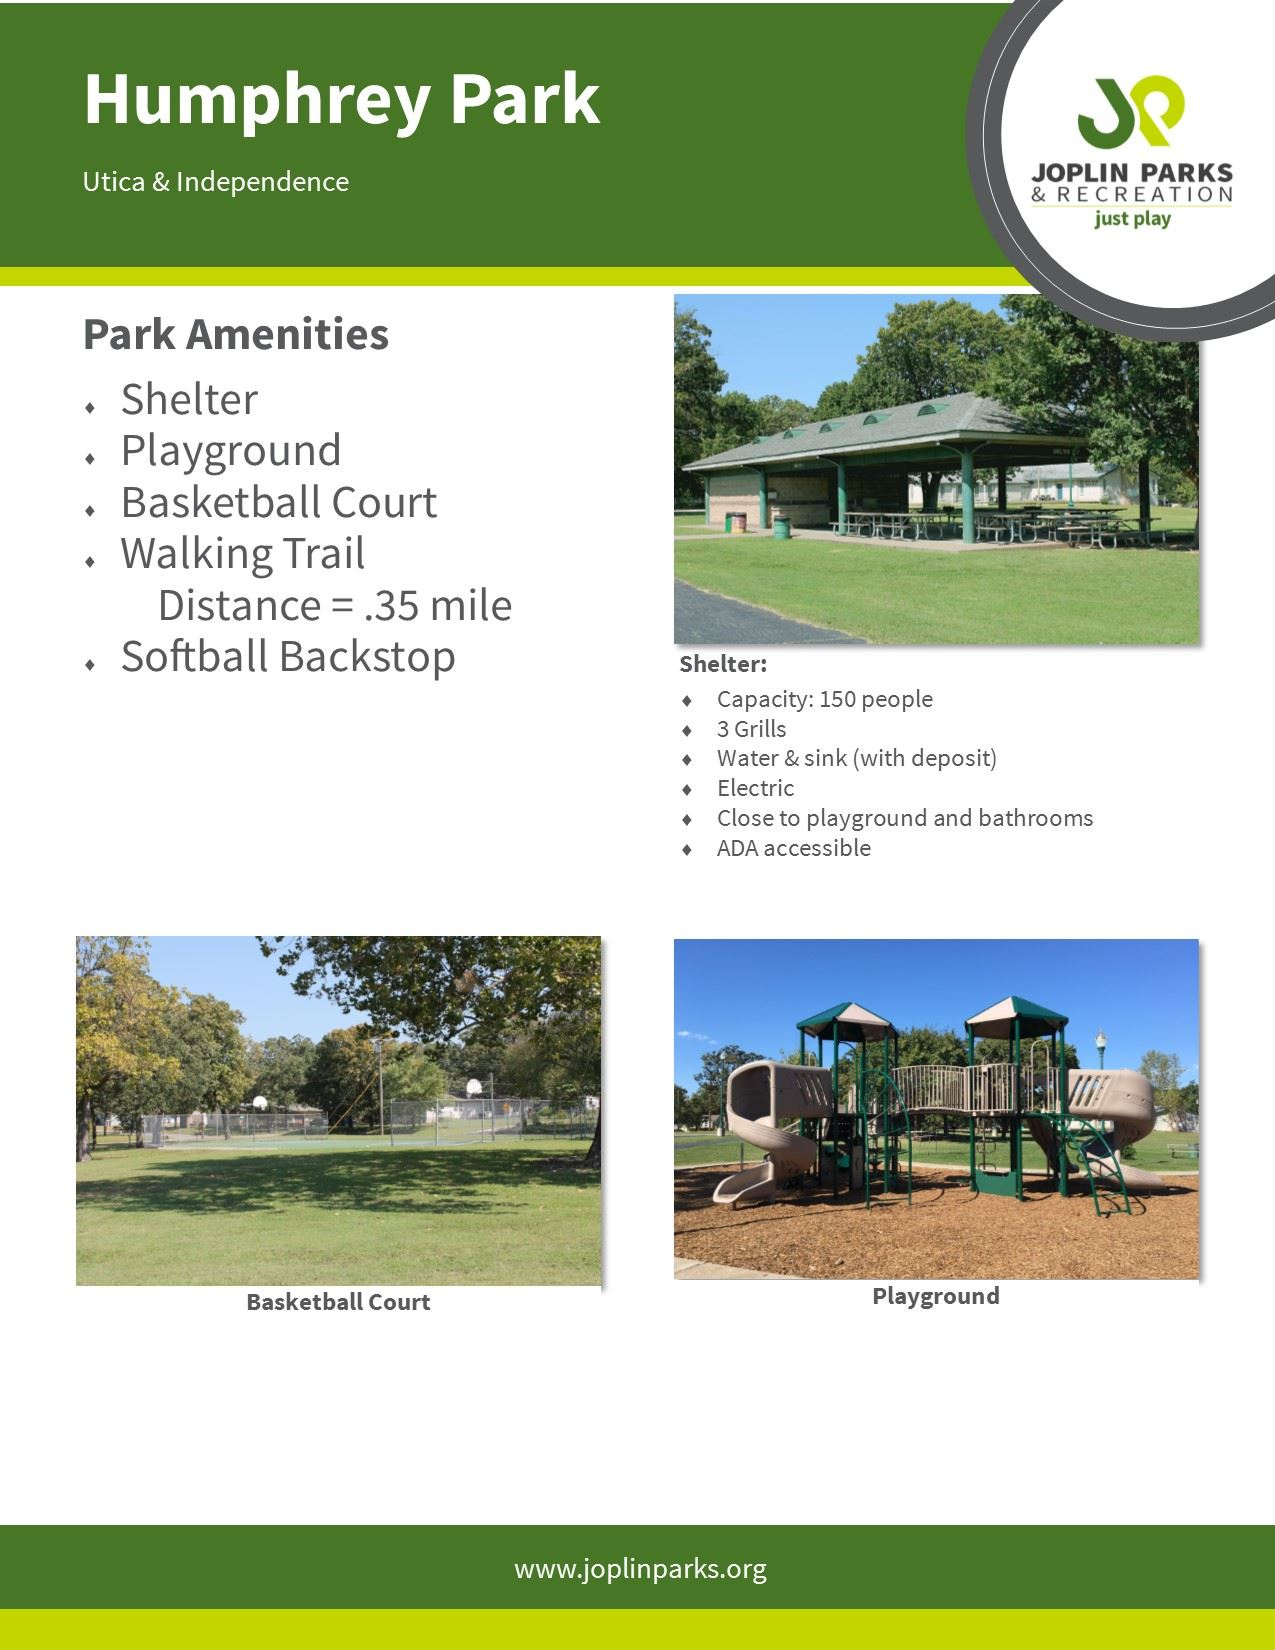 Humphrey Park Info Sheet